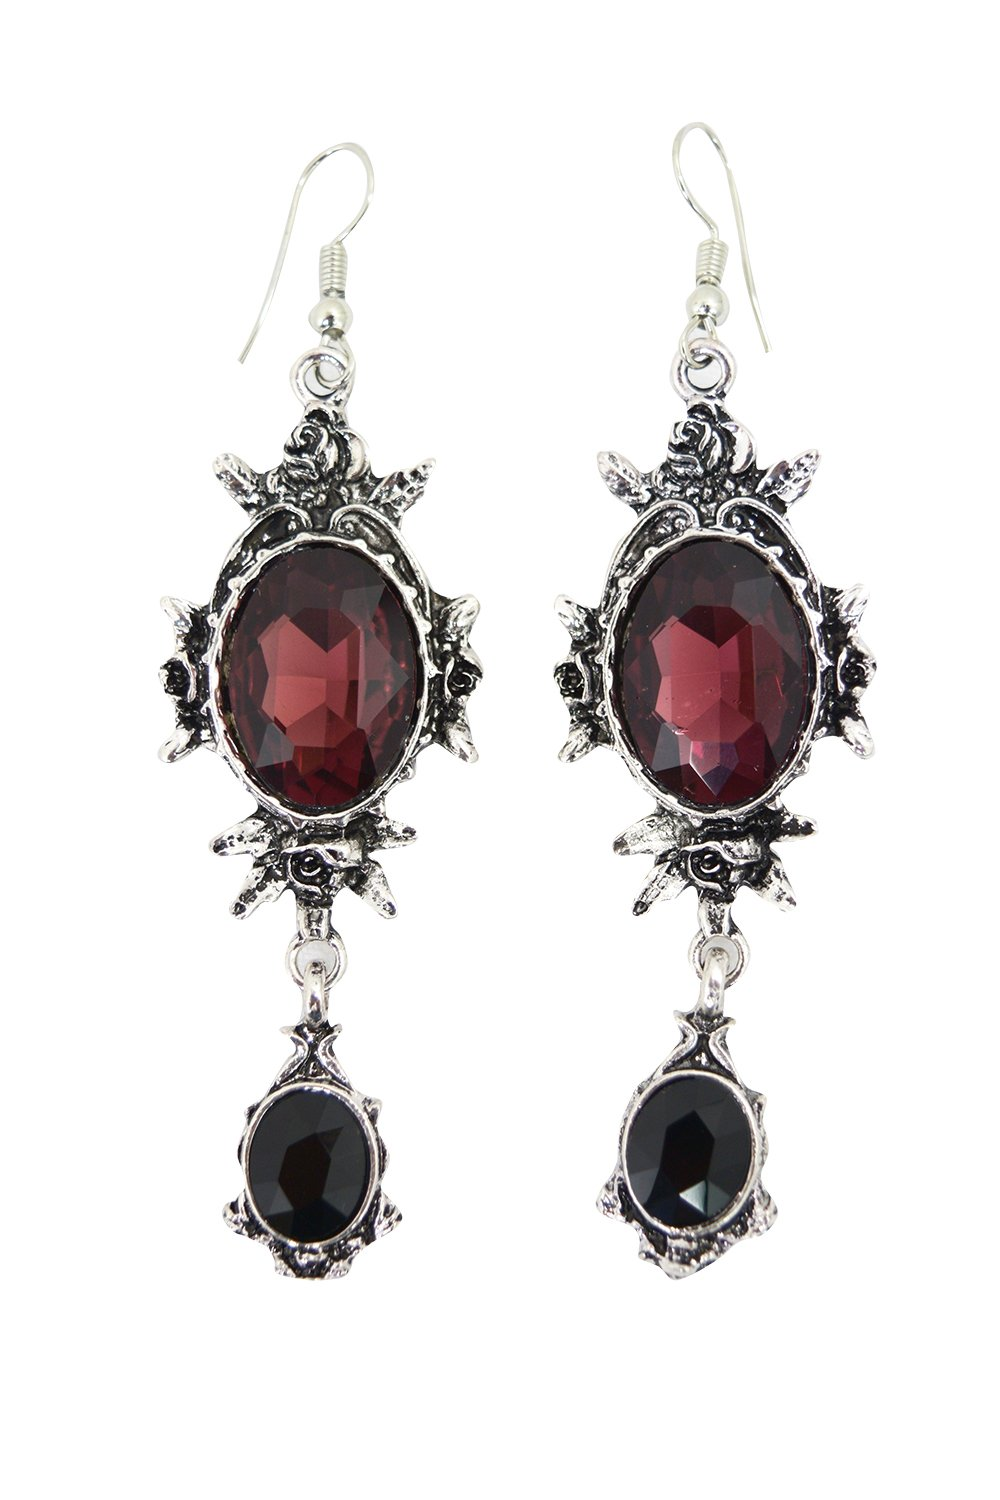 Restyle Wild Roses Gothic Romance Evening Statement Earrings